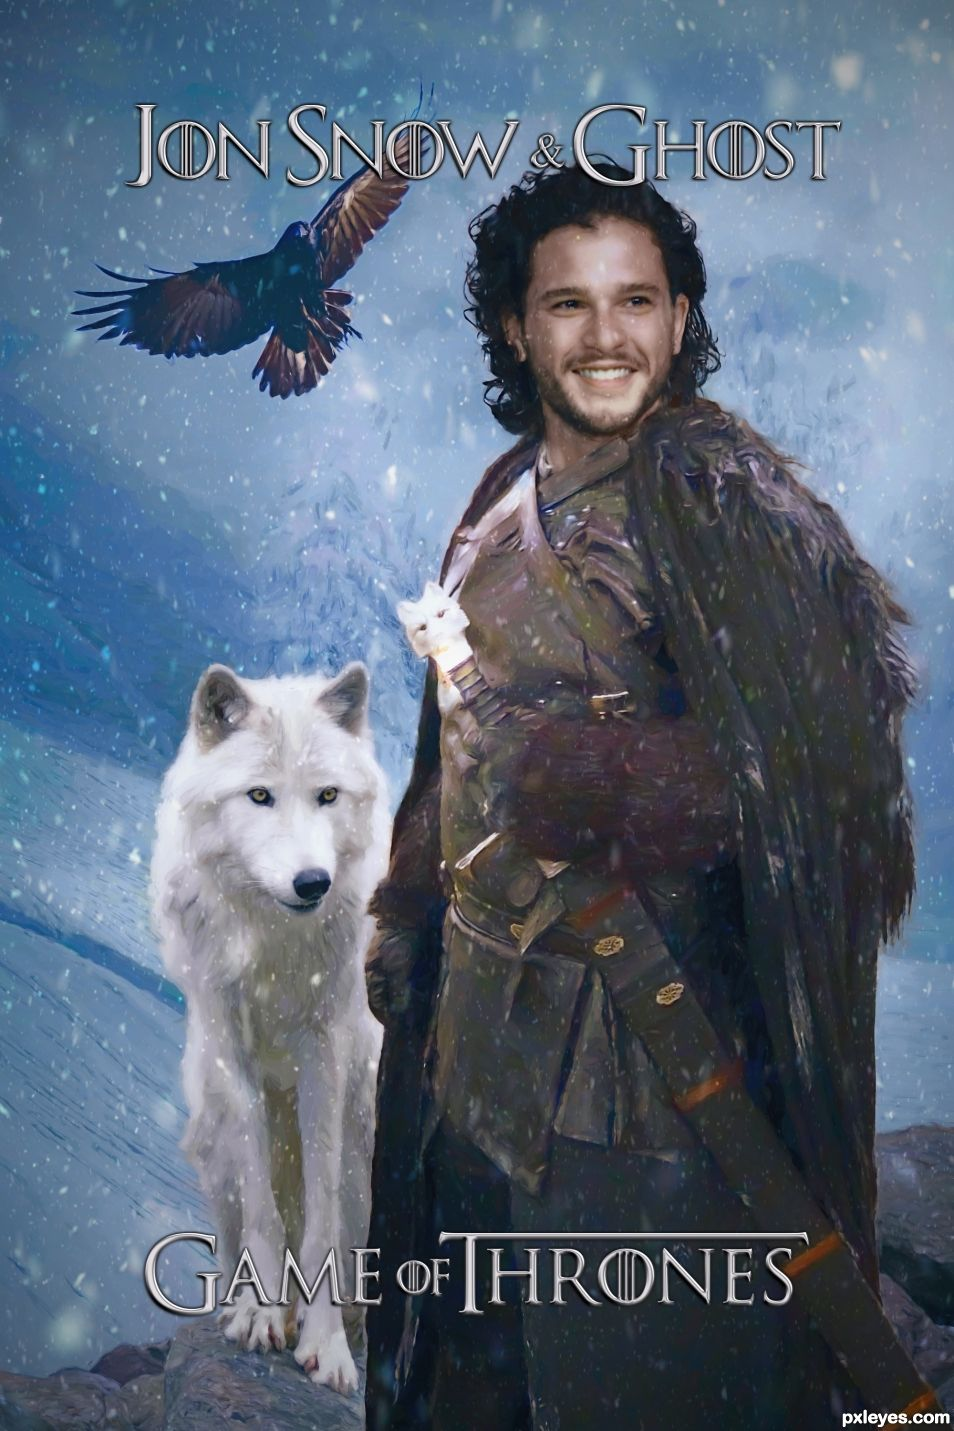 Jon with Ghost